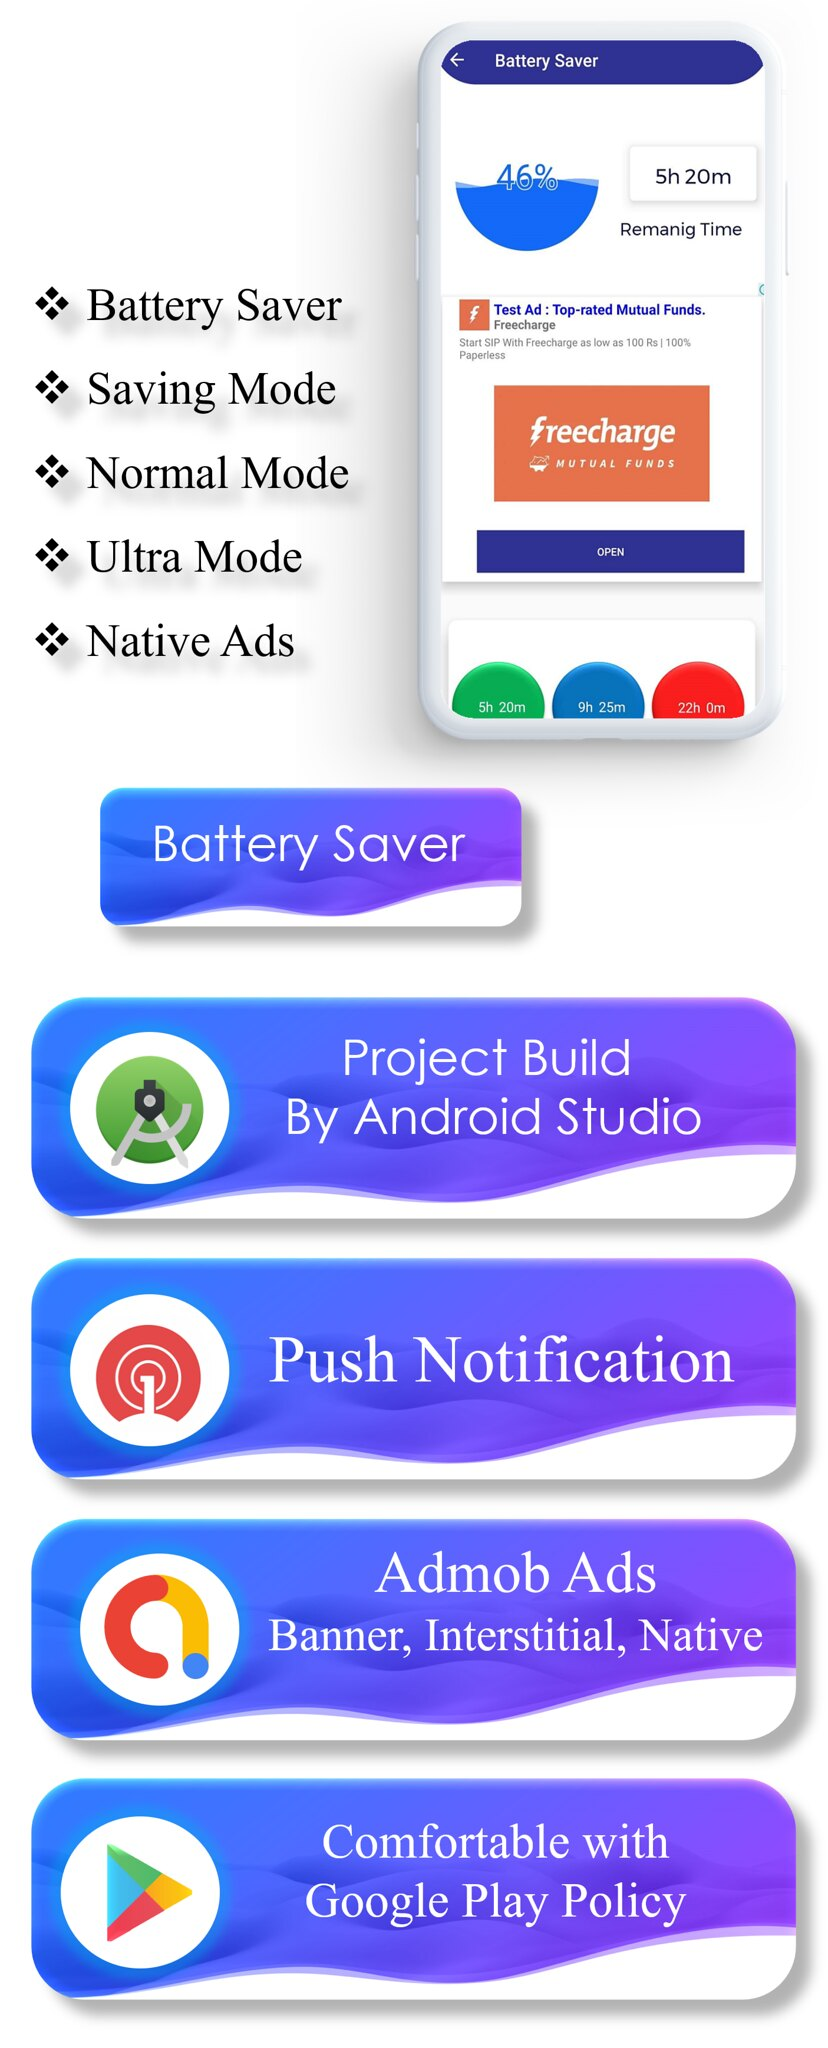 TOTO - VPN | VPN App | Facebook Ads | Admob Ads | Ads Manage Remotely | VPN  | VPN Subscription Plan - 9